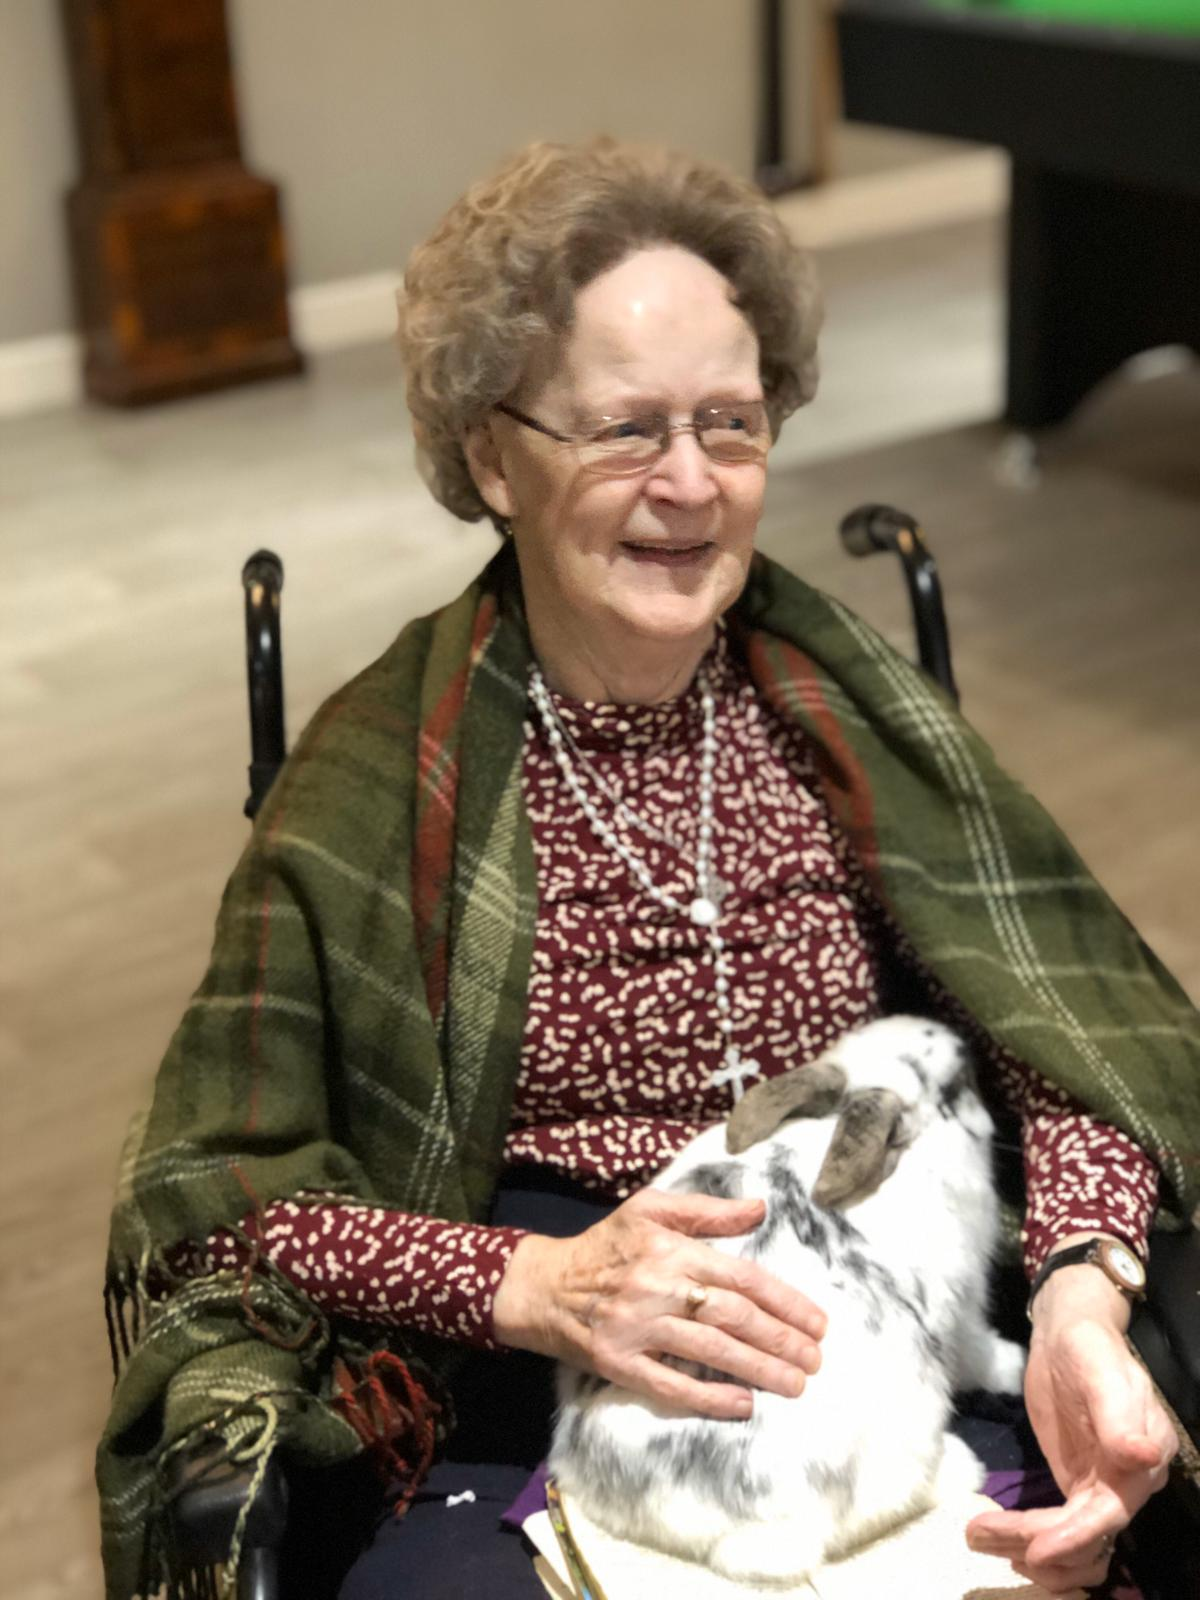 Nellie holding snowball the bunny rabbit